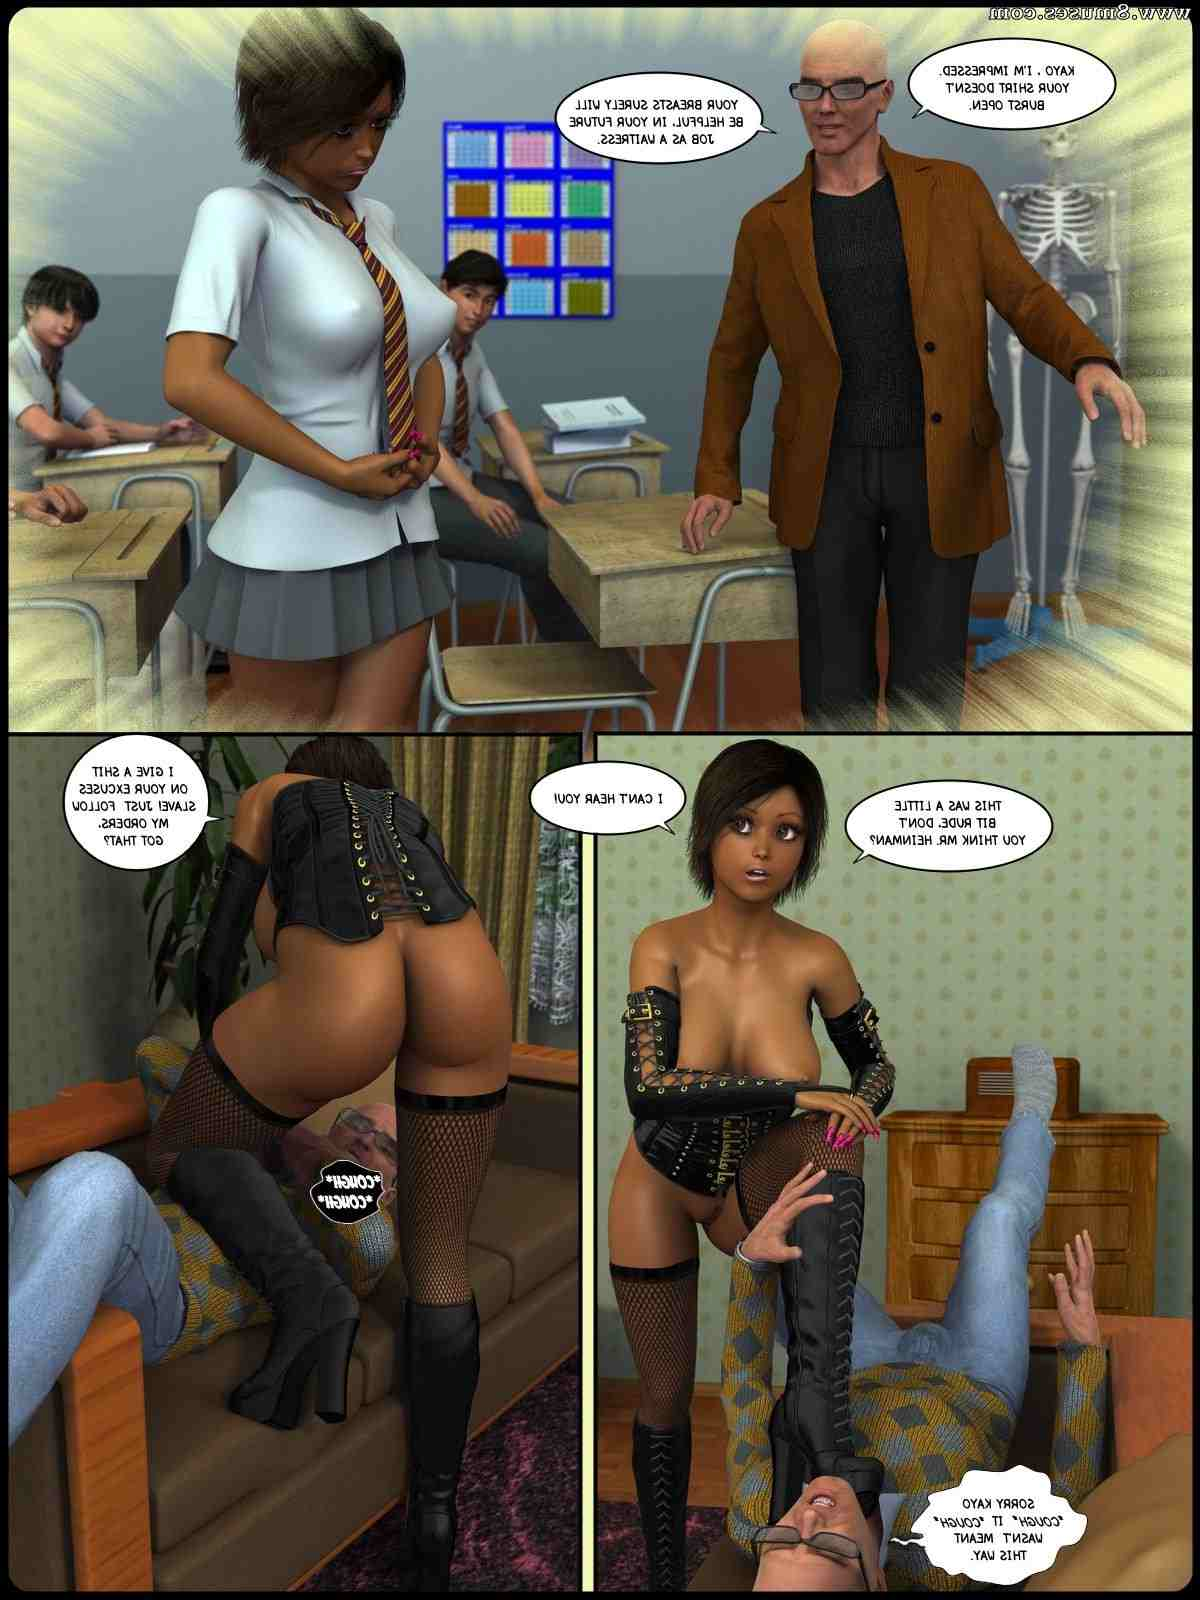 Daniel40-Comics/School-Gals School_Gals__8muses_-_Sex_and_Porn_Comics_40.jpg